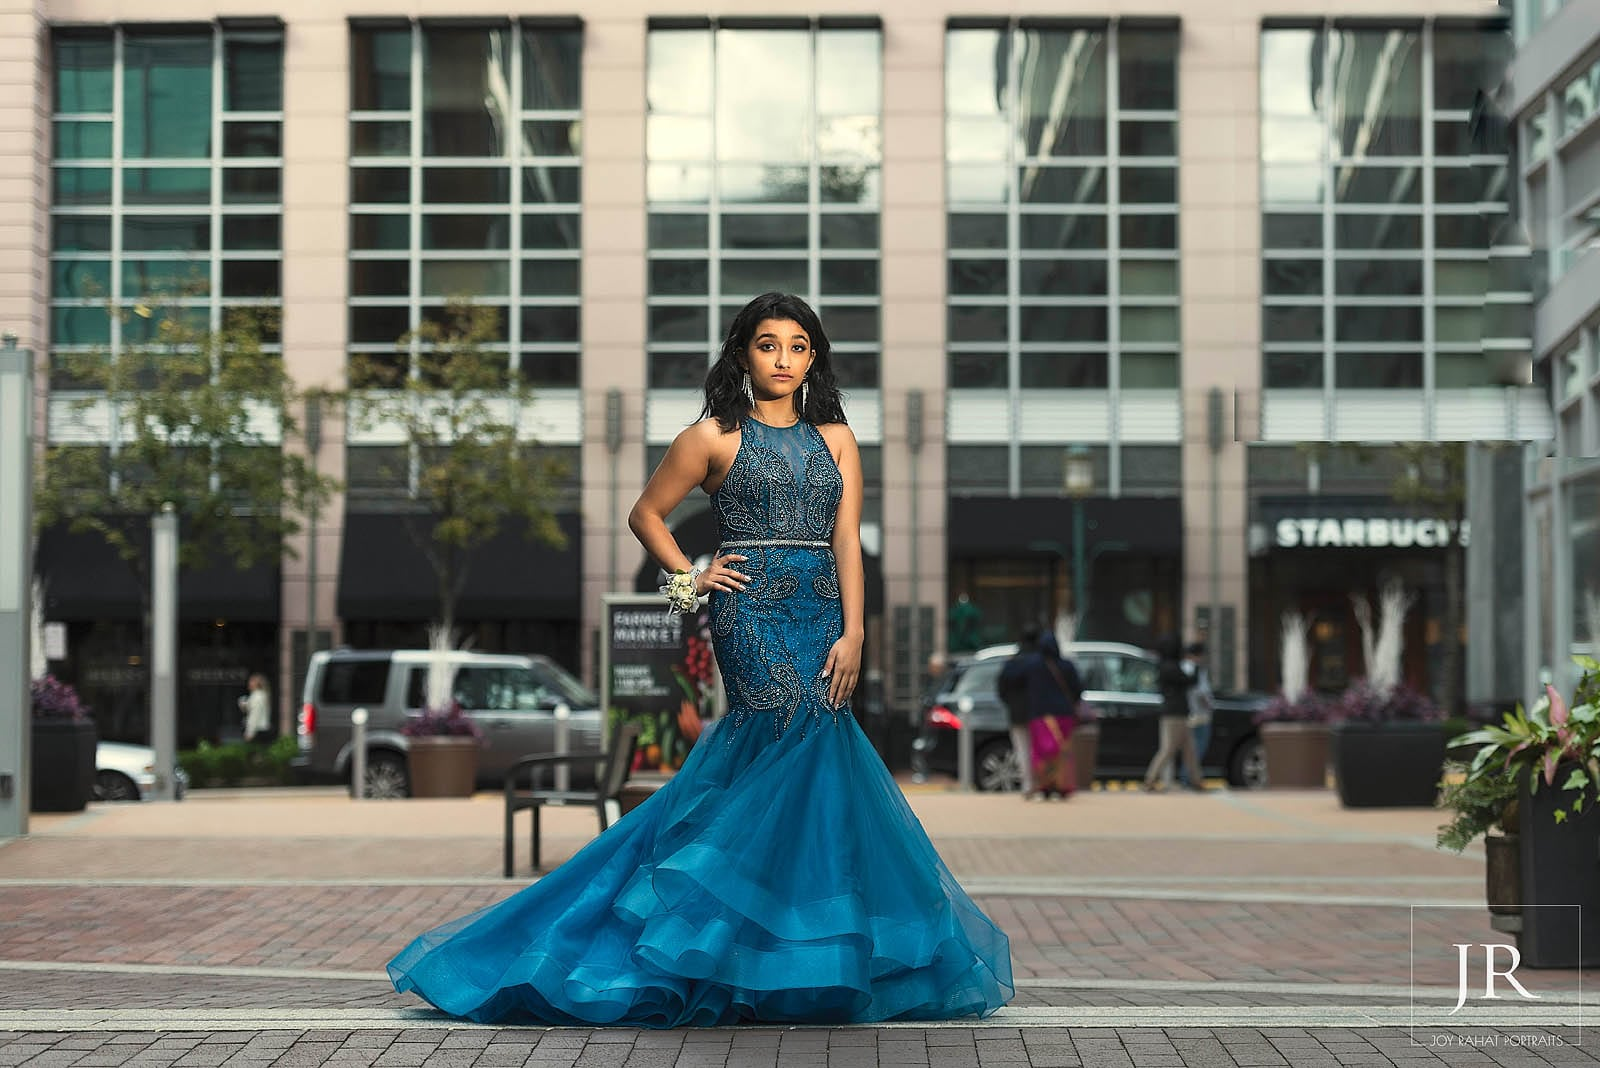 Long, mermaid style blue prom dress in Tyson's corner for outdoor prom photoshoot